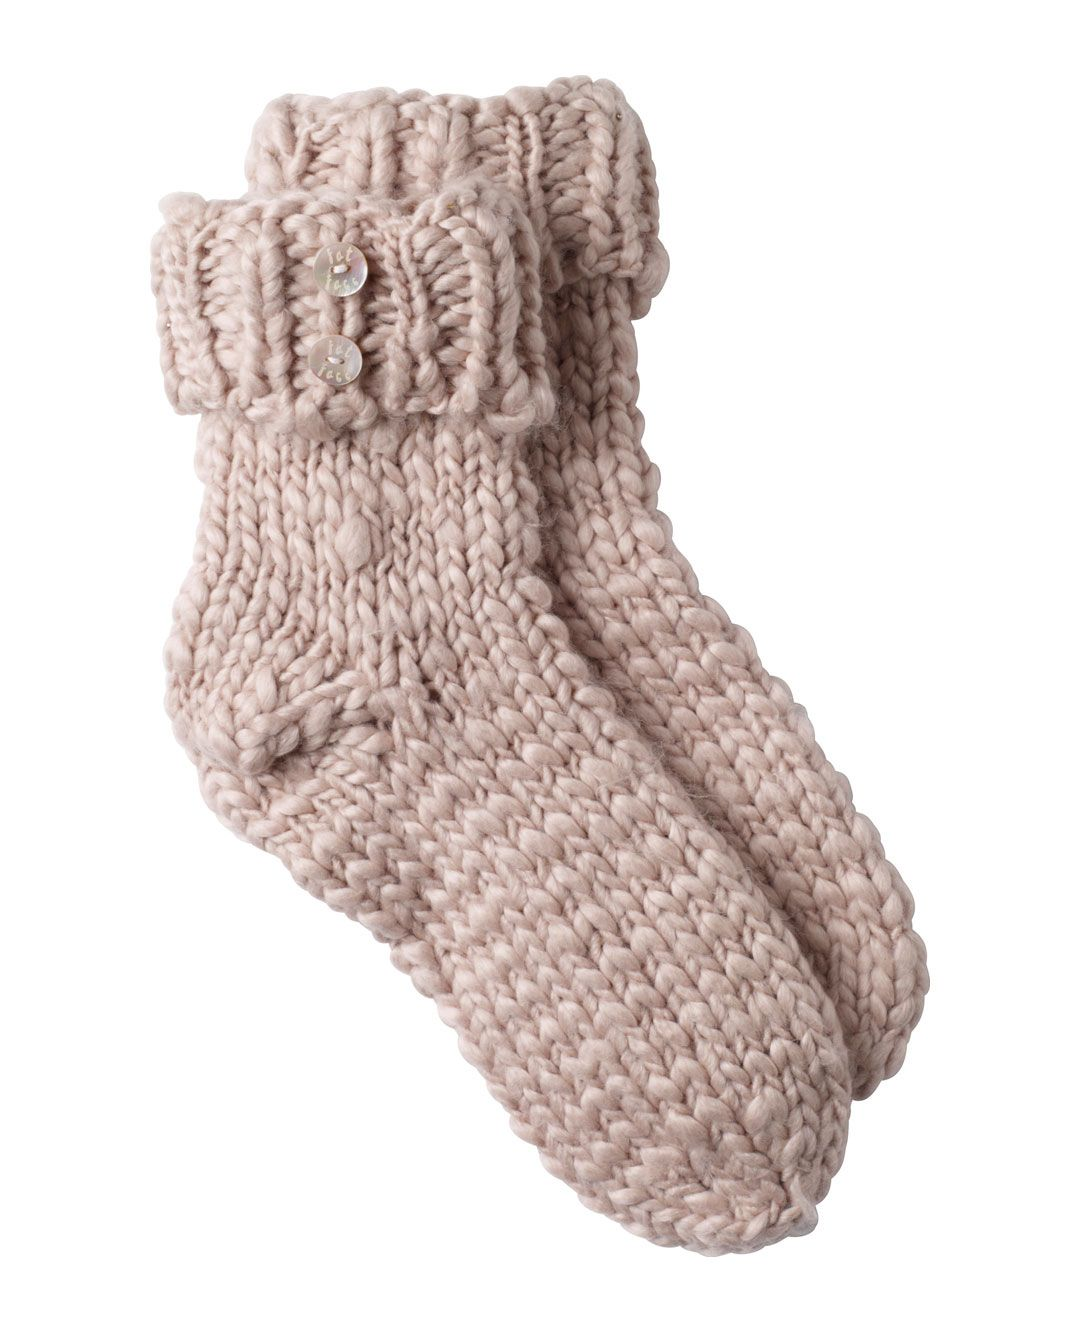 easy to make, comfy, and cute. | Bed socks, Socks, Things ...